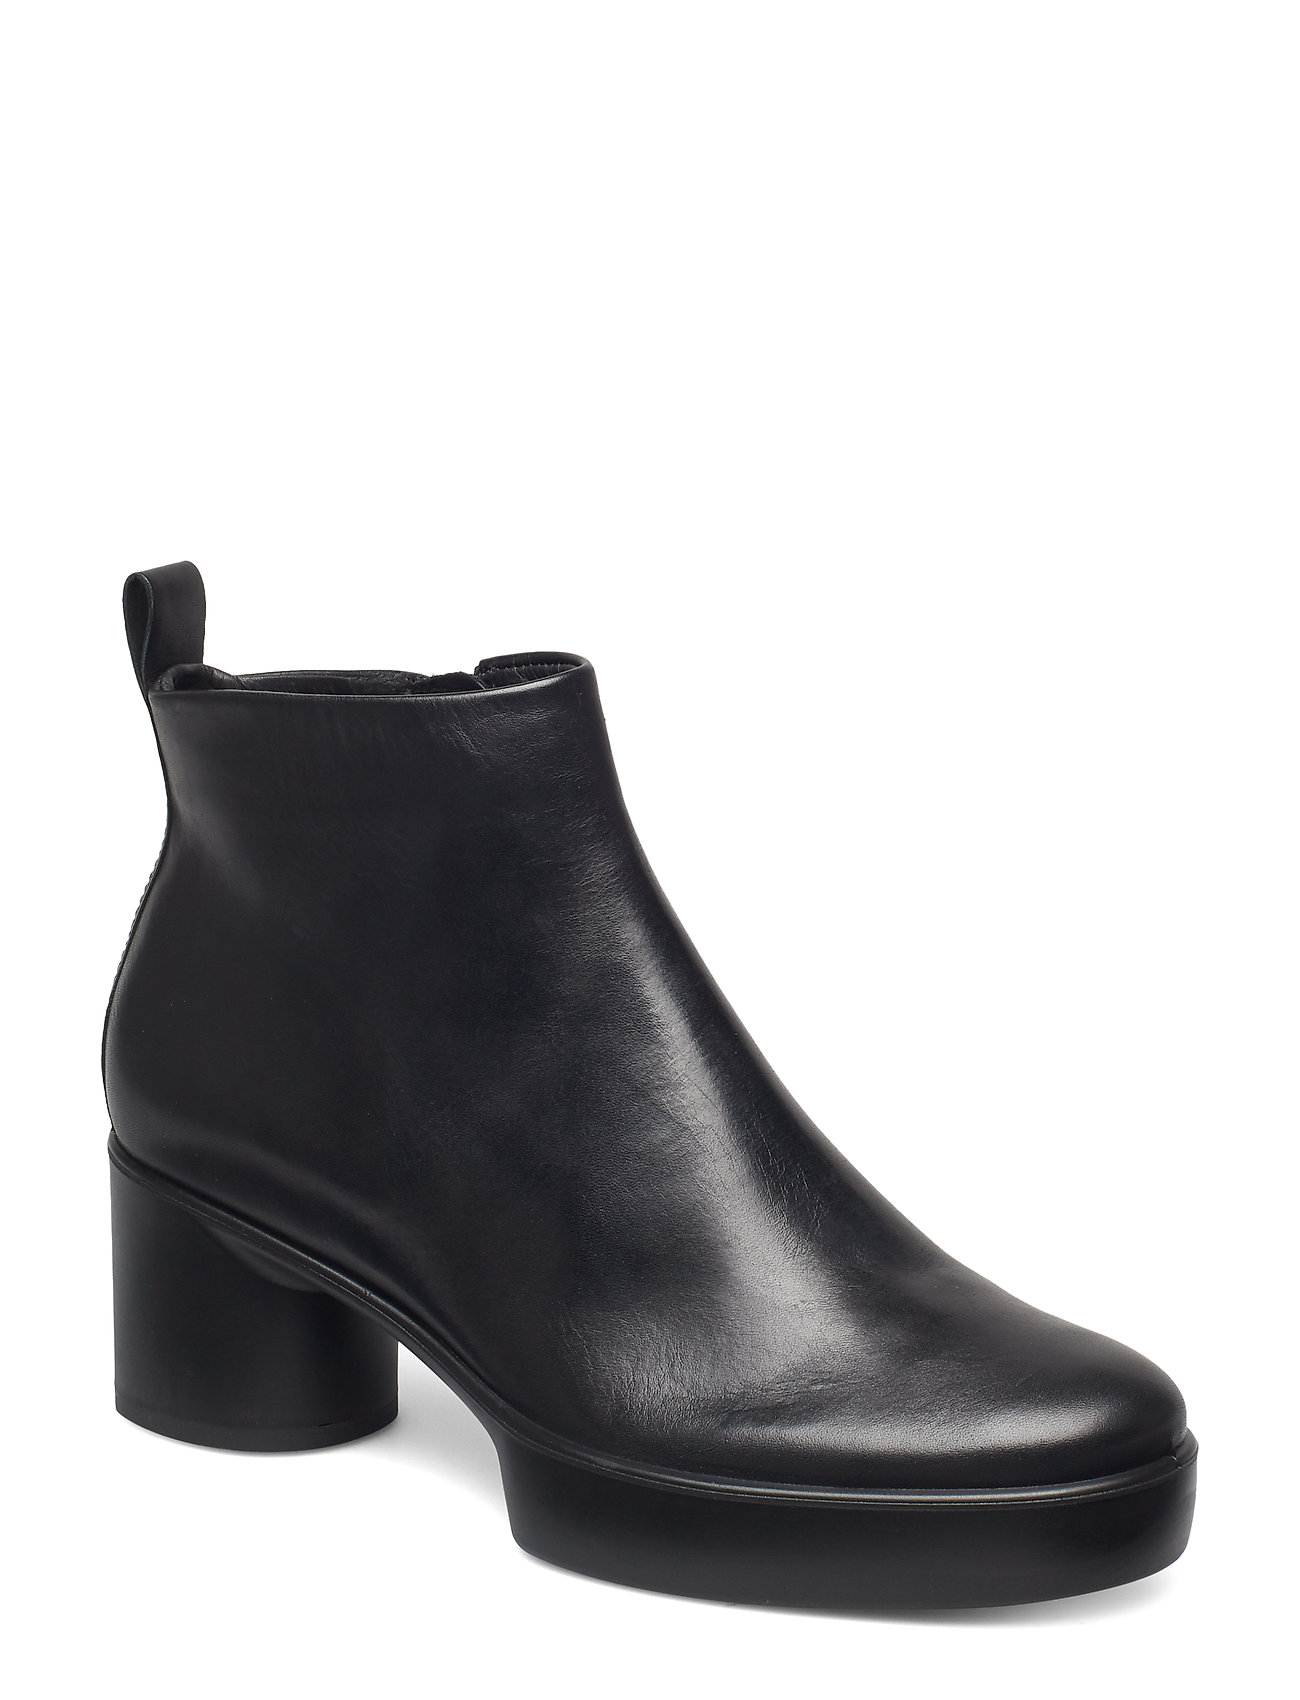 Image of Shape Sculpted Motion 35 Shoes Boots Ankle Boots Ankle Boot - Heel Sort ECCO (3439725029)